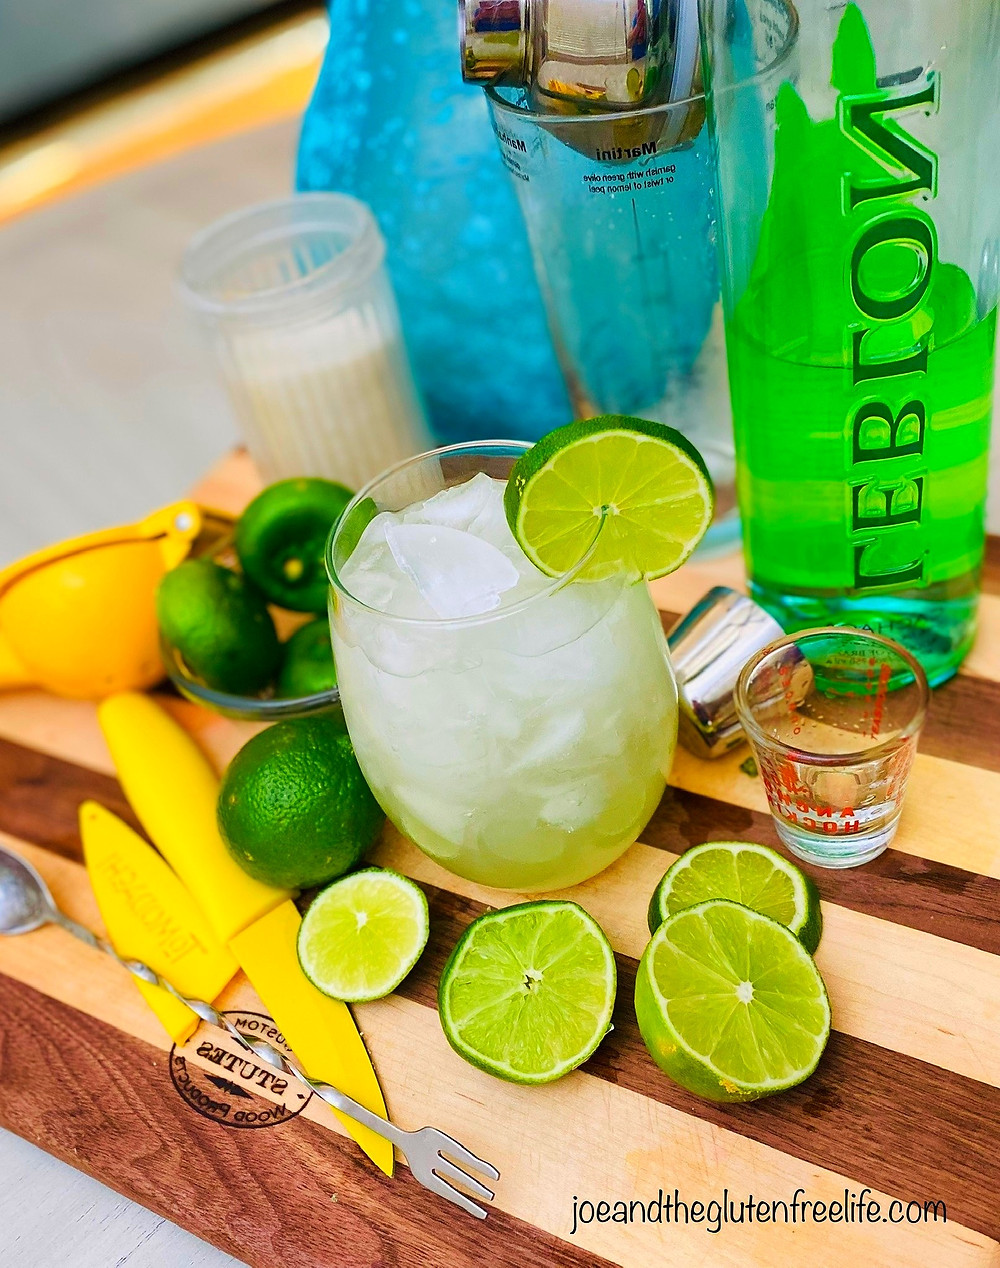 Learn how to make the national cocktail of Brazil! Only 4 ingredients needed: lime, sugar, cachaça, and ice!